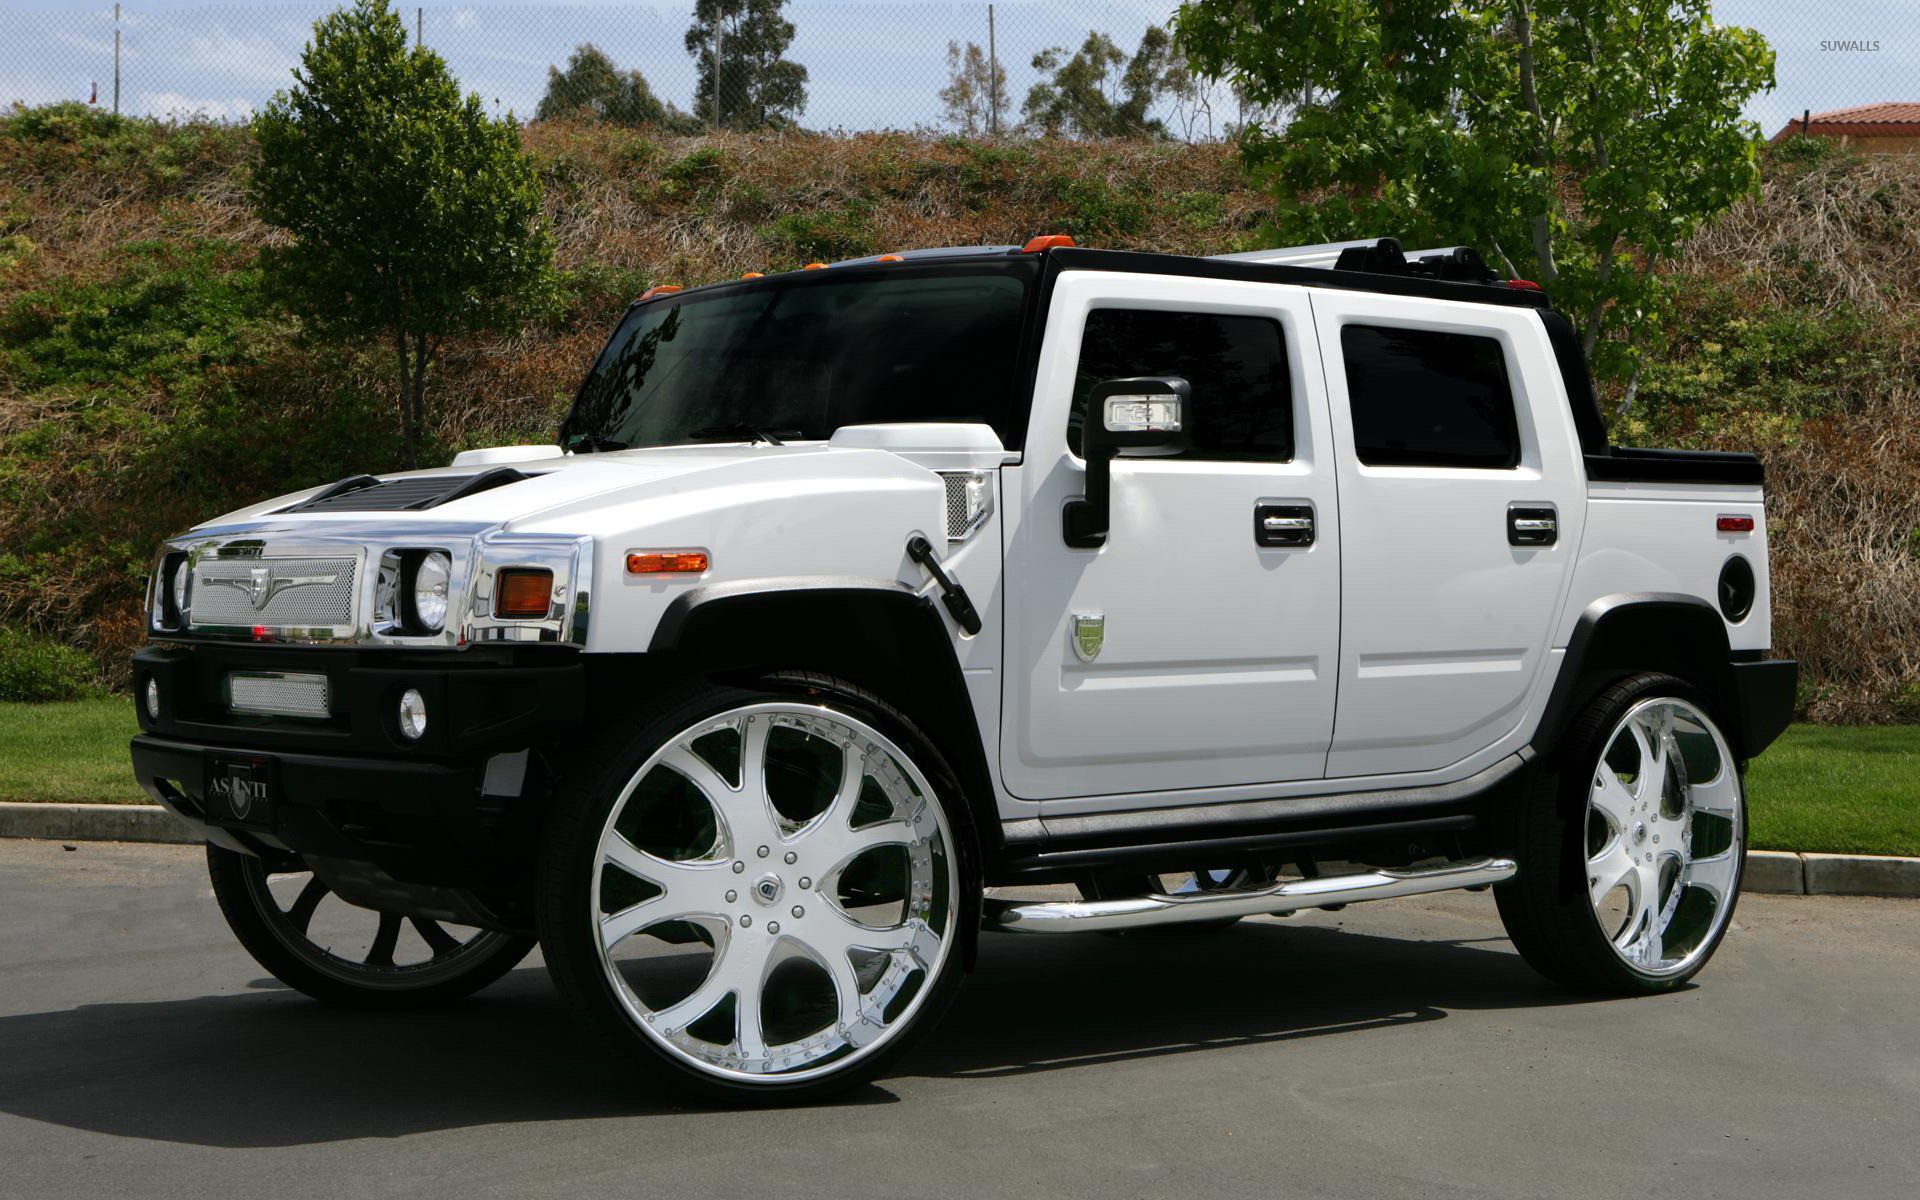 534454 Cool Review About 2009 Hummer H2 Sut with Cool Pictures Cars Review